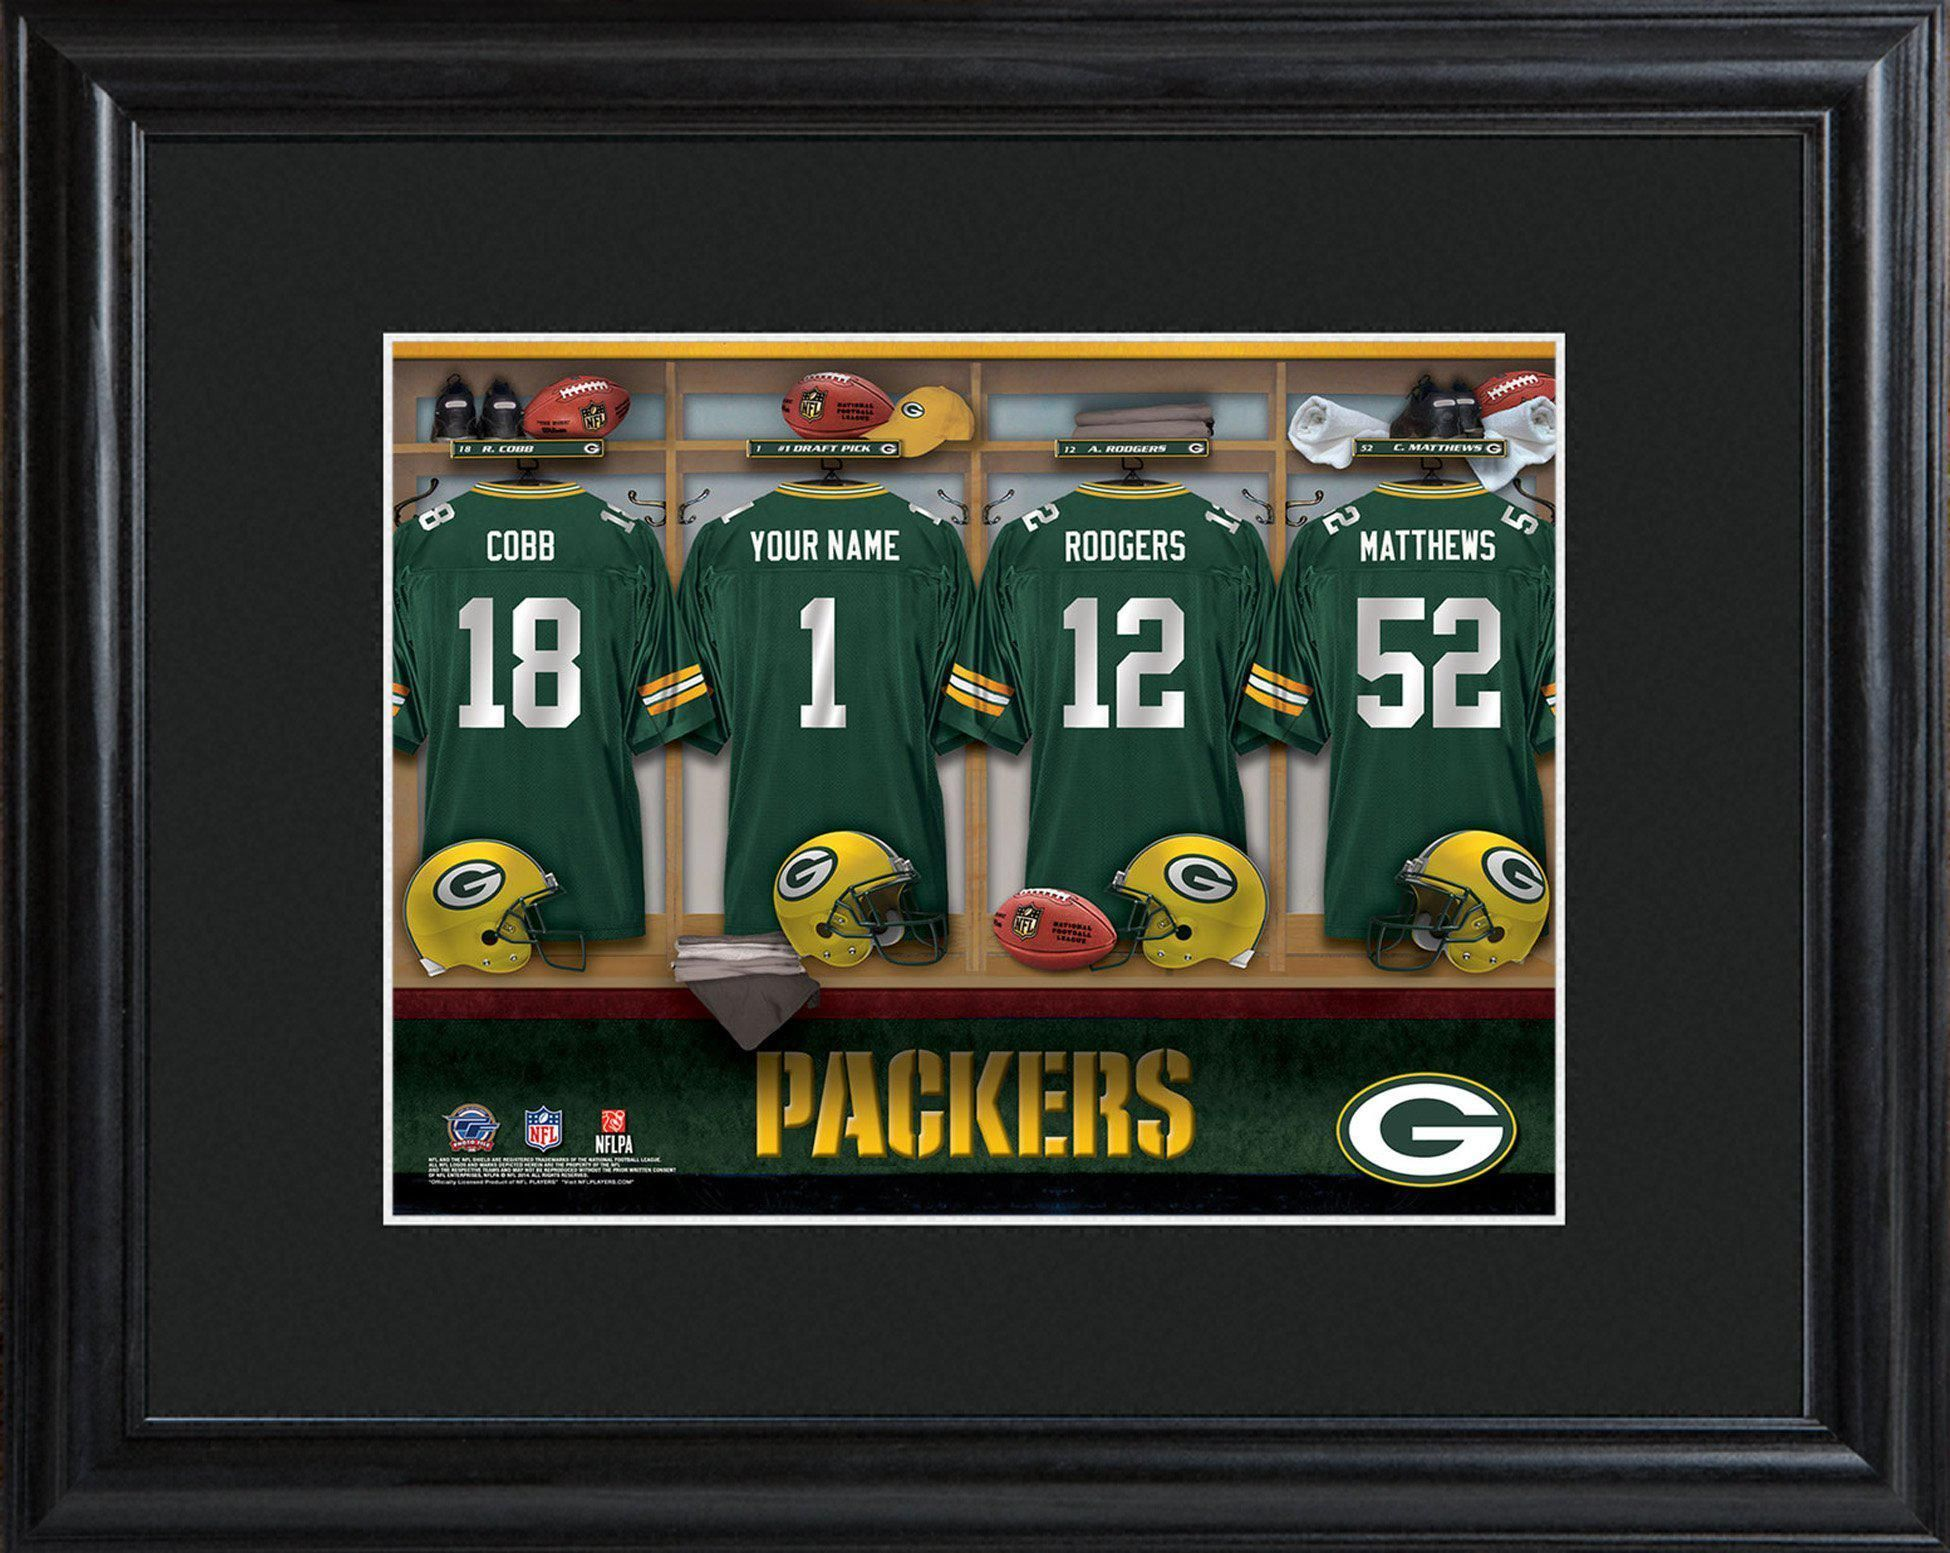 Personalized Nfl Locker Room Print Gift Packers Personalized Nfl Lockers Locker Room Photo